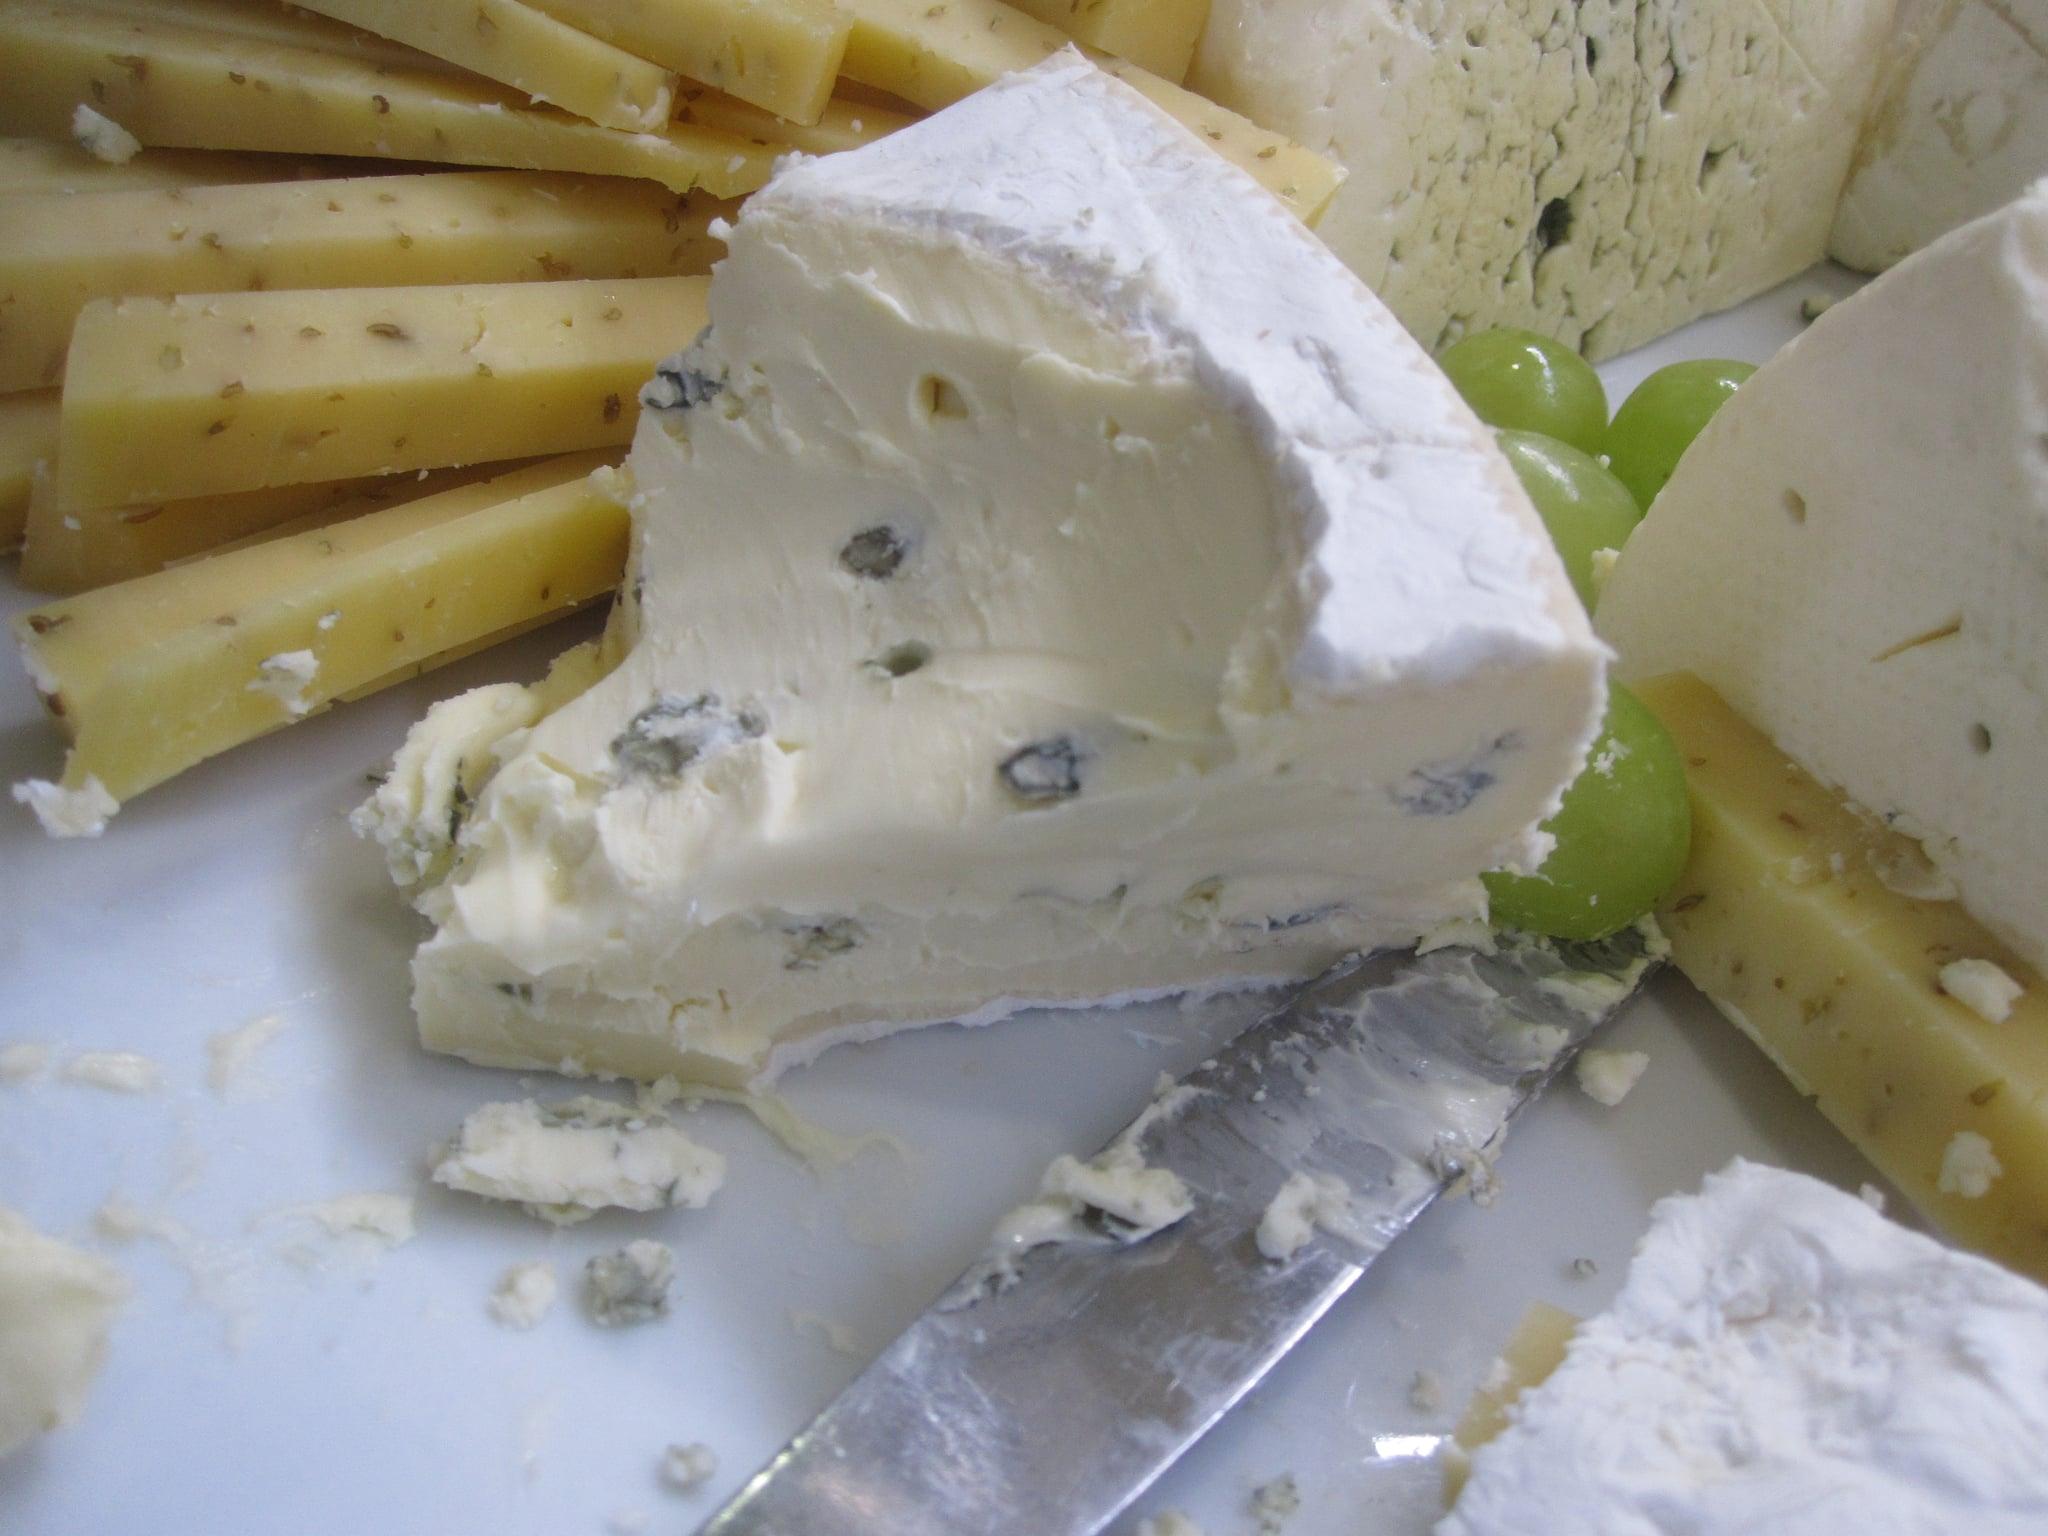 There were huge displays of cheese and bread. After sampling all the cheese, I decided this creamy blue was the best.